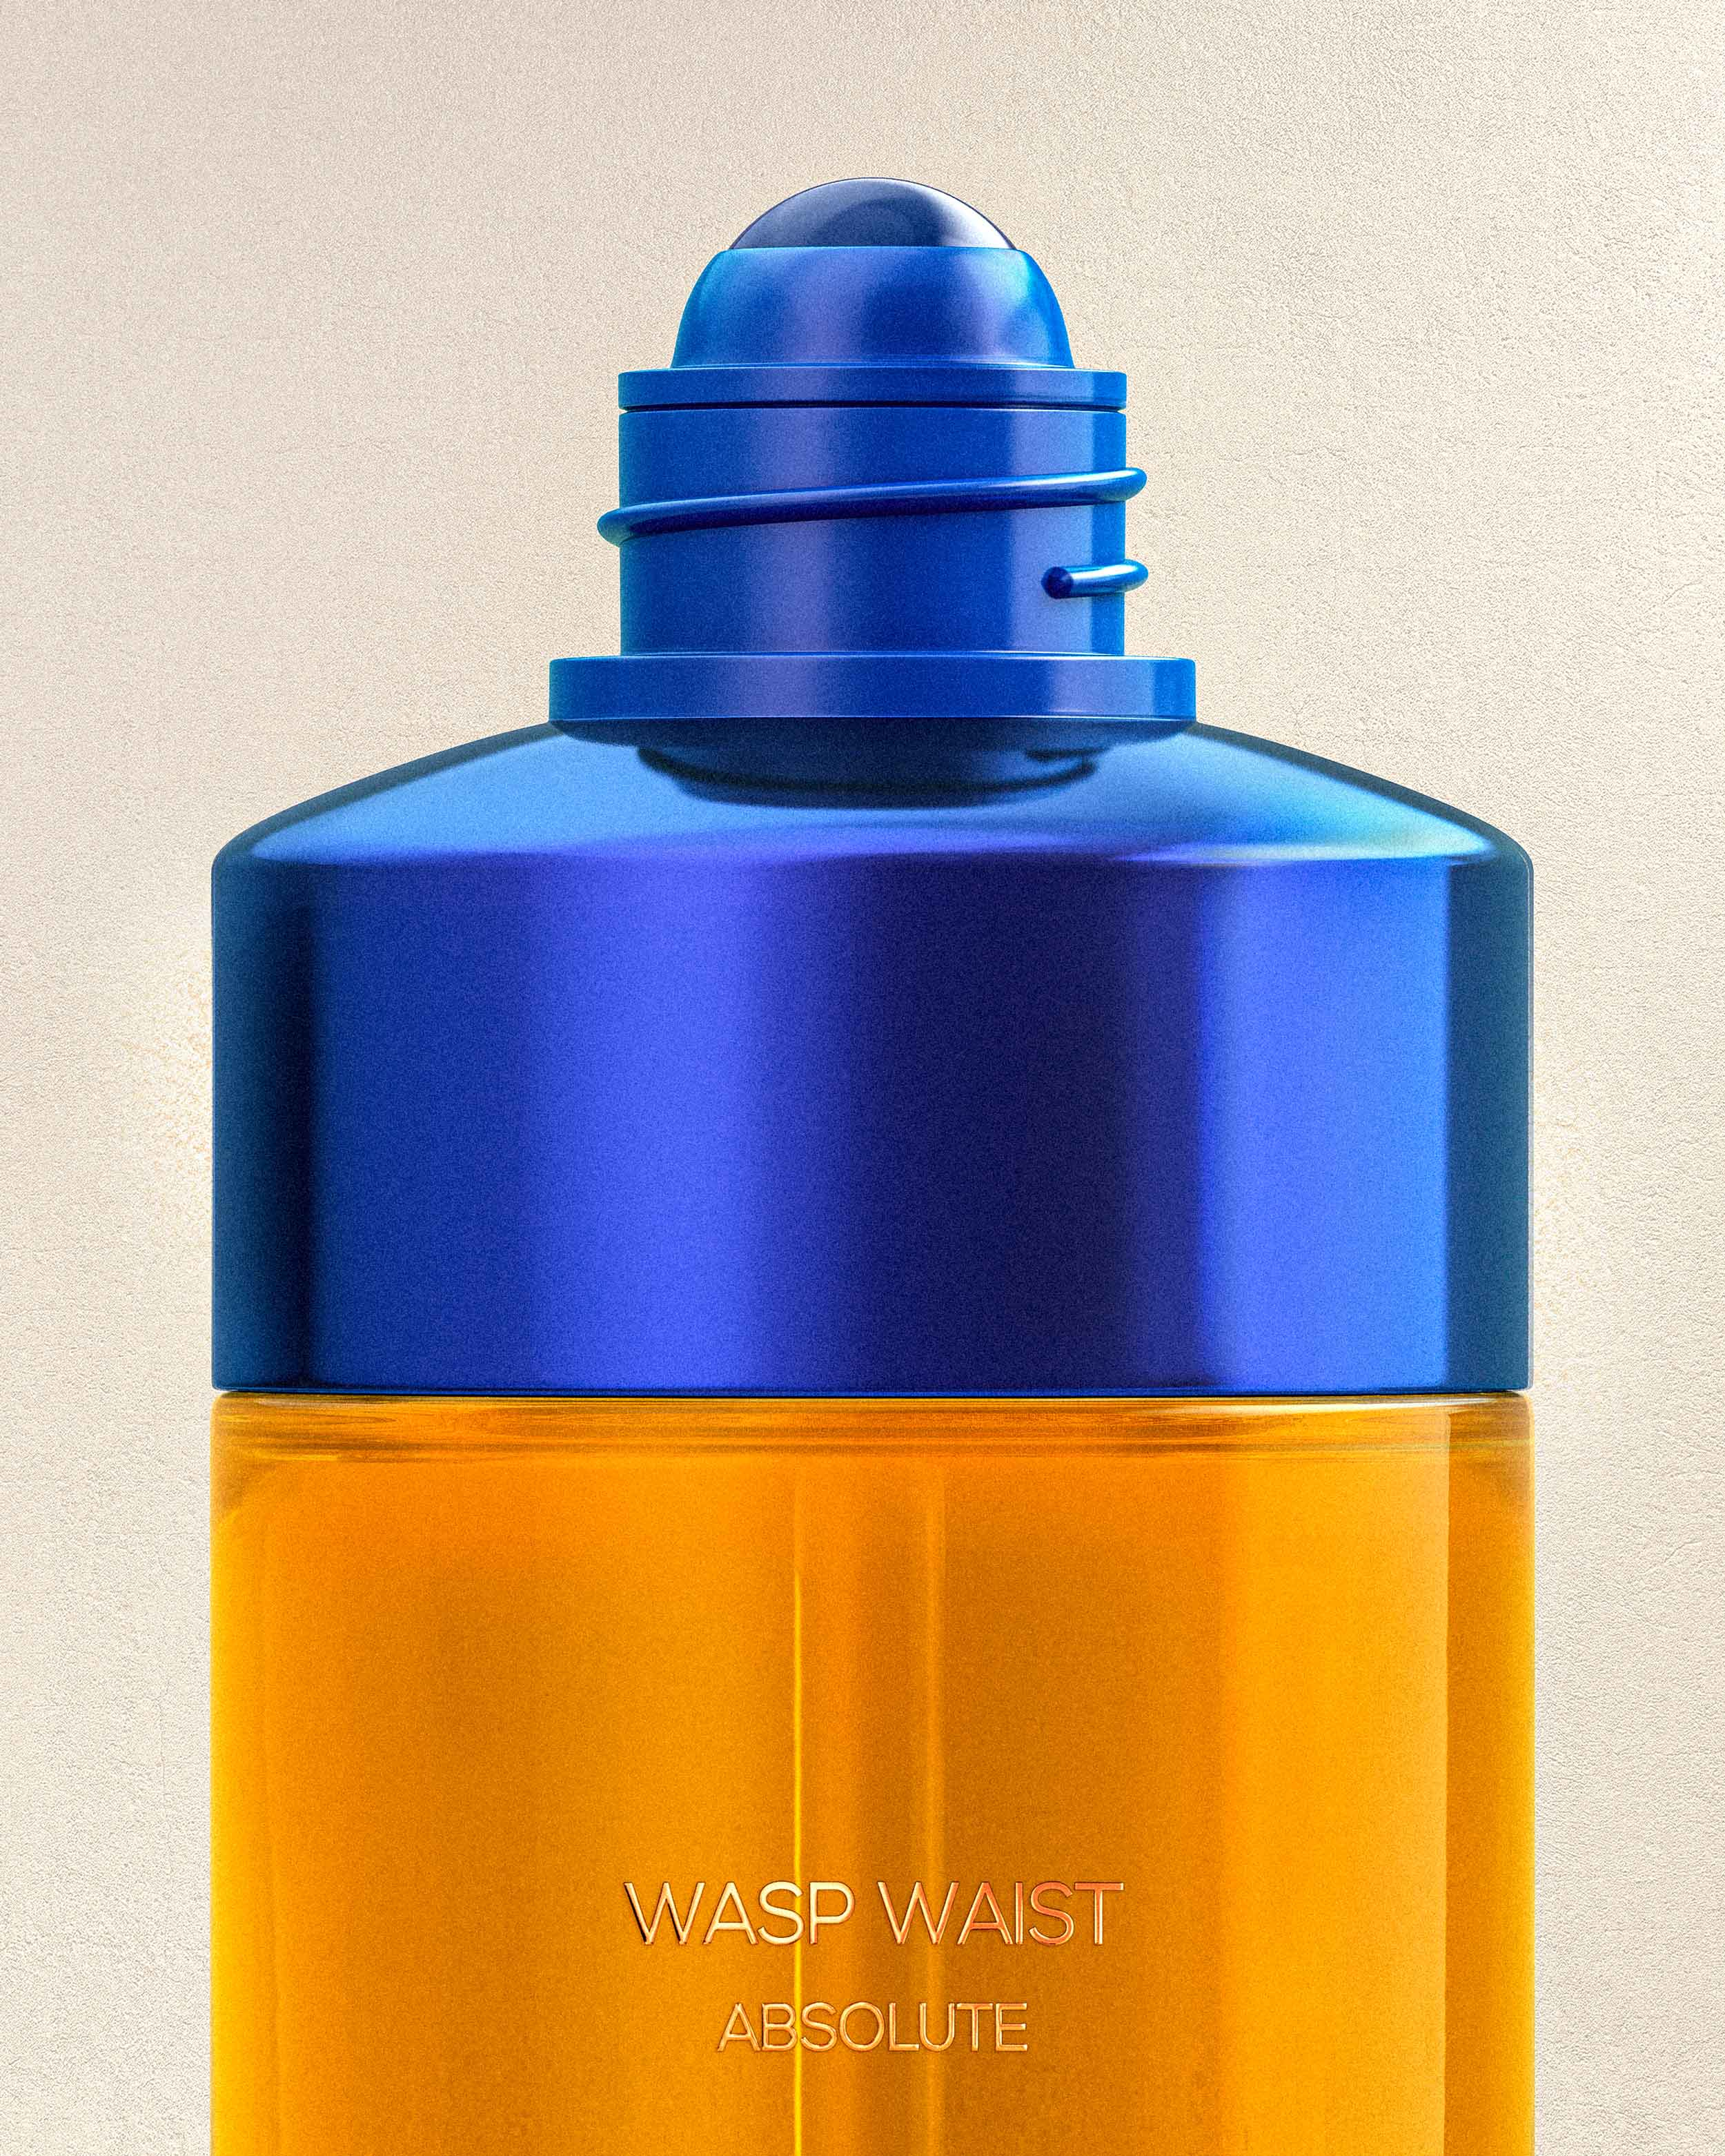 OJAR Absolute Wasp Waist Perfume Roll-on